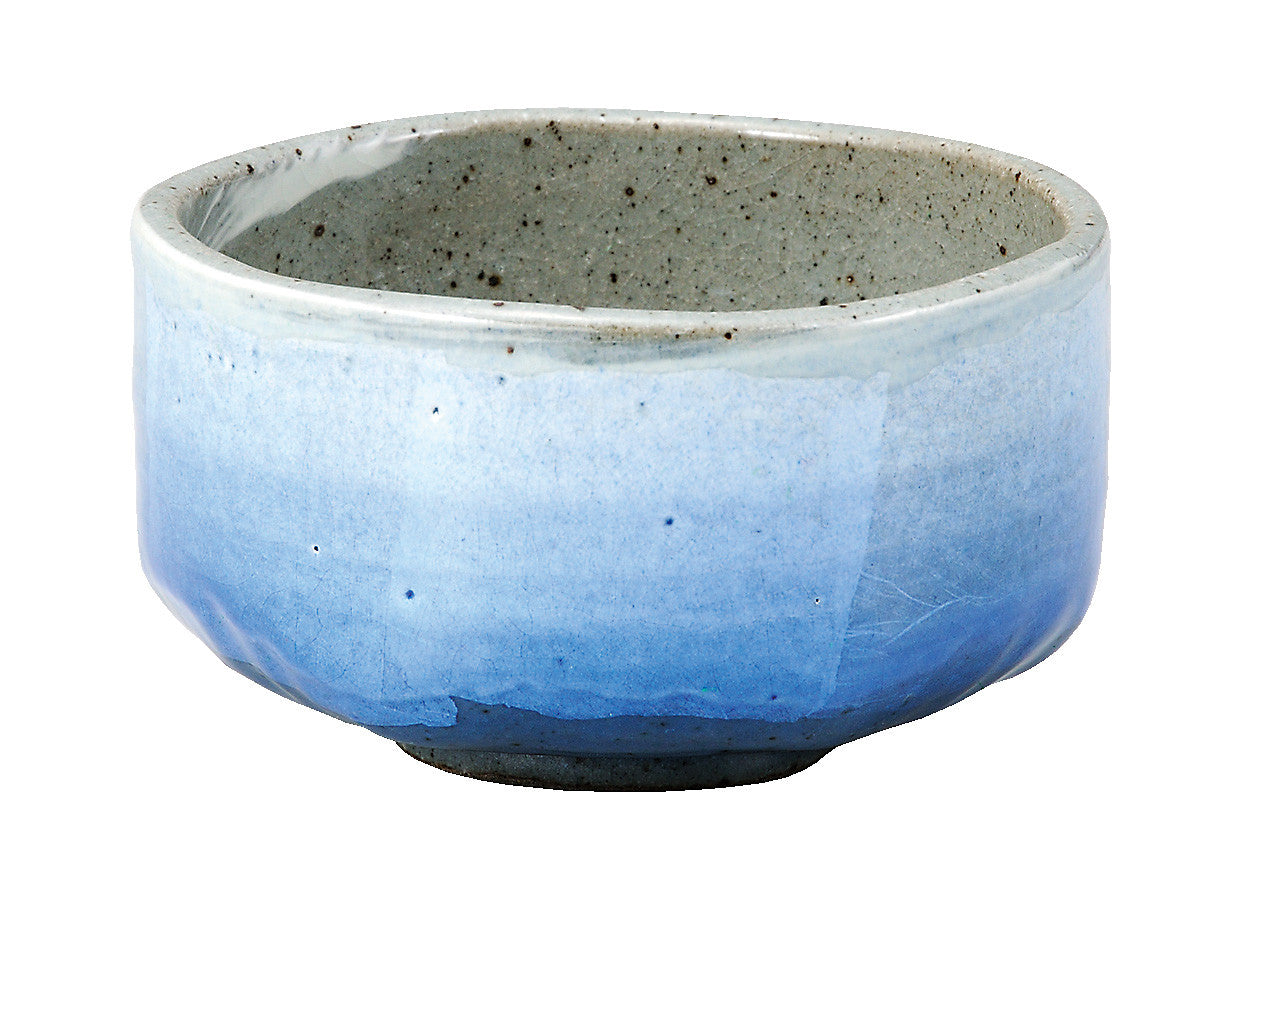 matcha tea bowl kutani porcelain